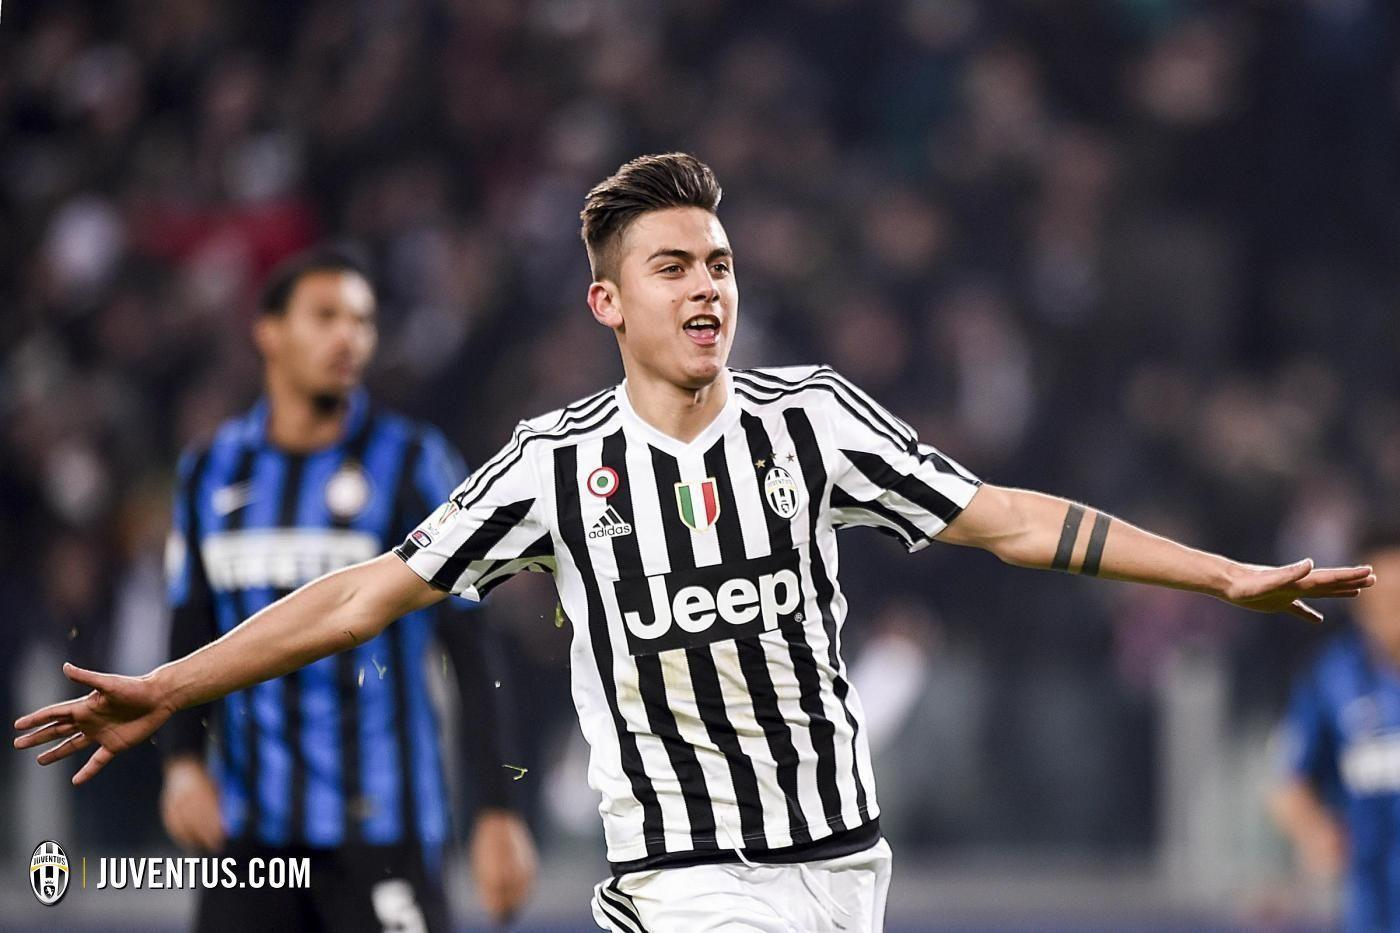 Ten things to know about #FrosinoneJuve - Juventus.com